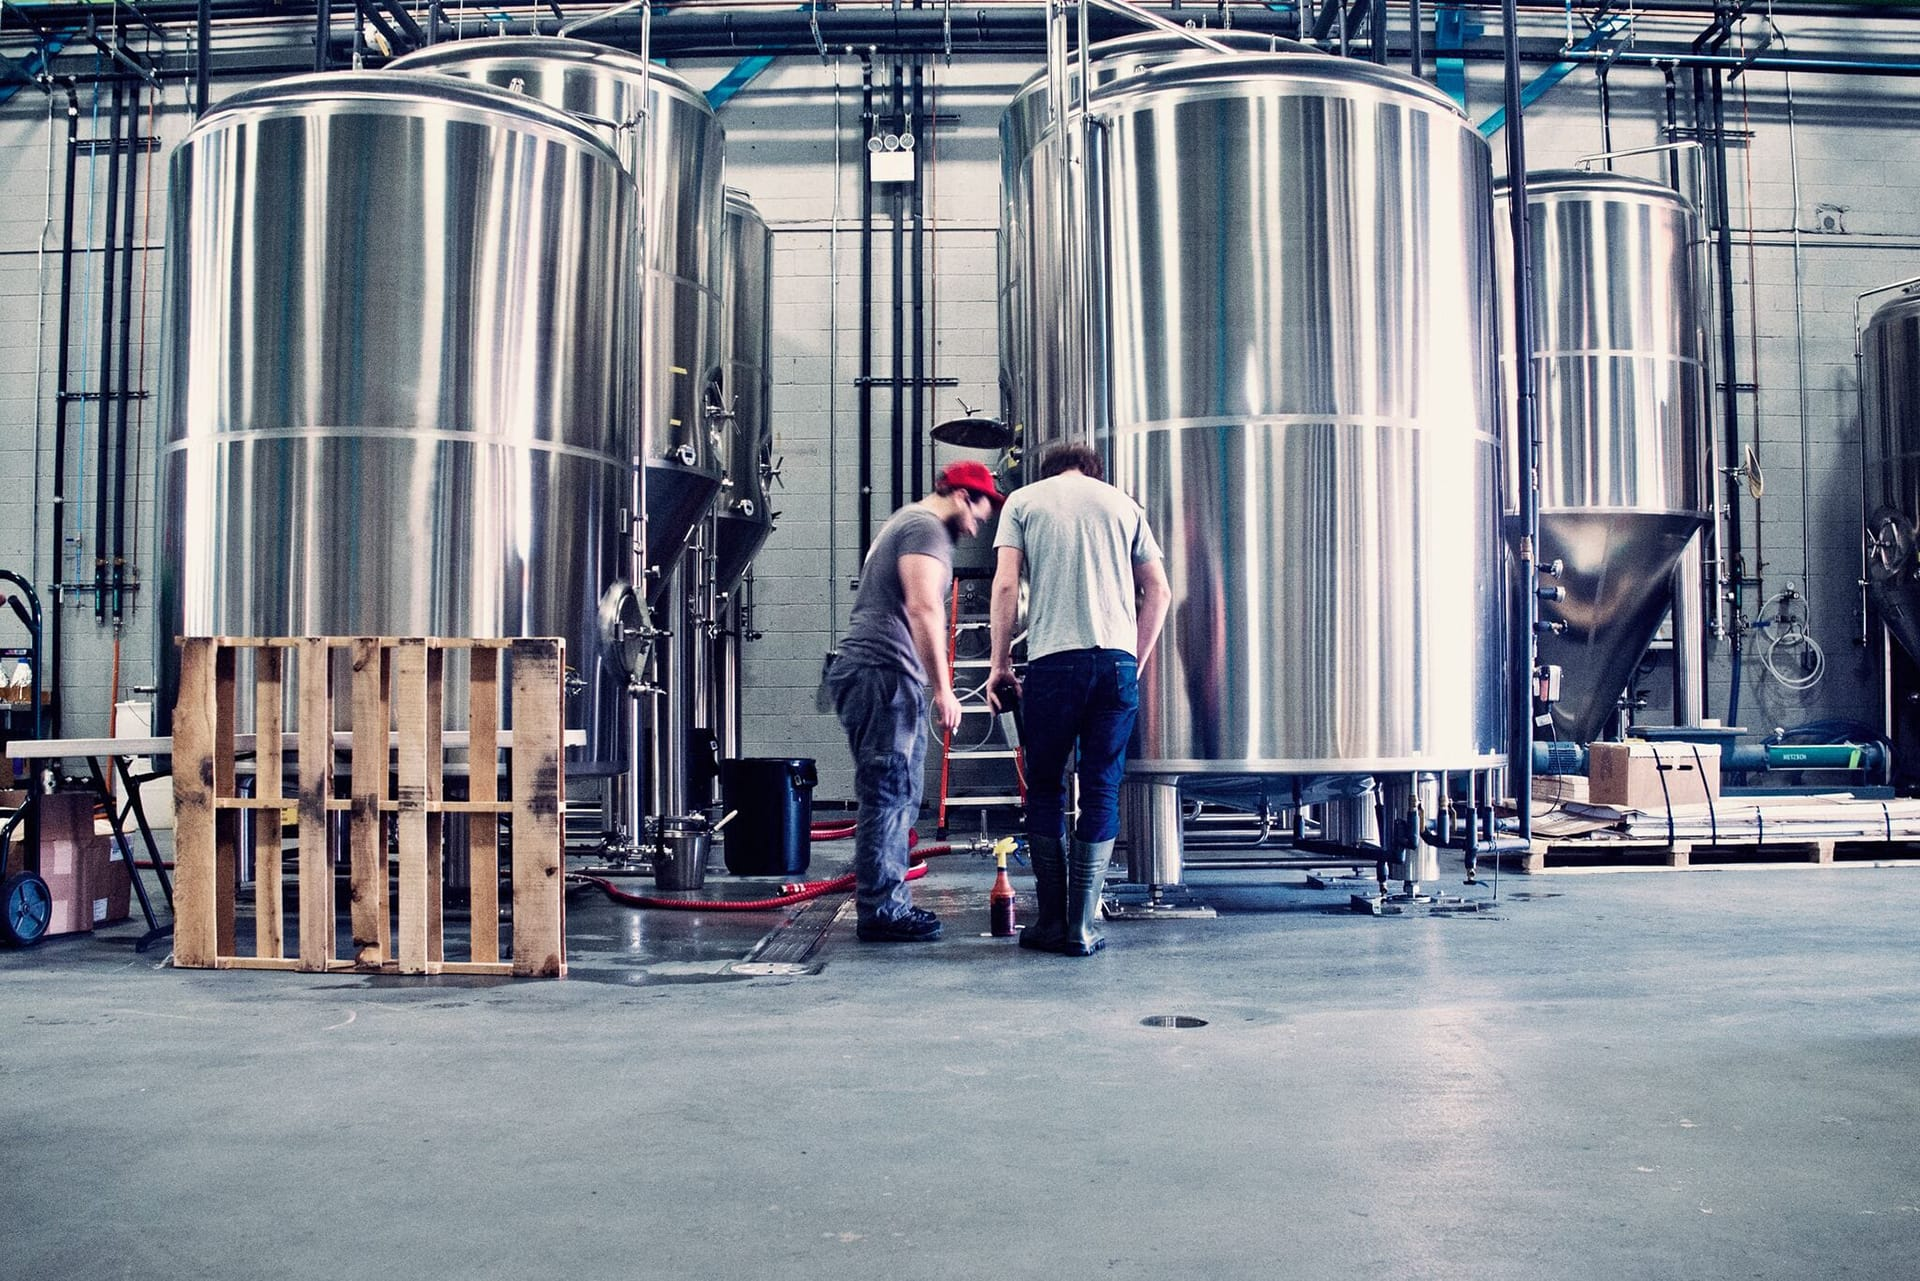 Behind the scenes at the brewery